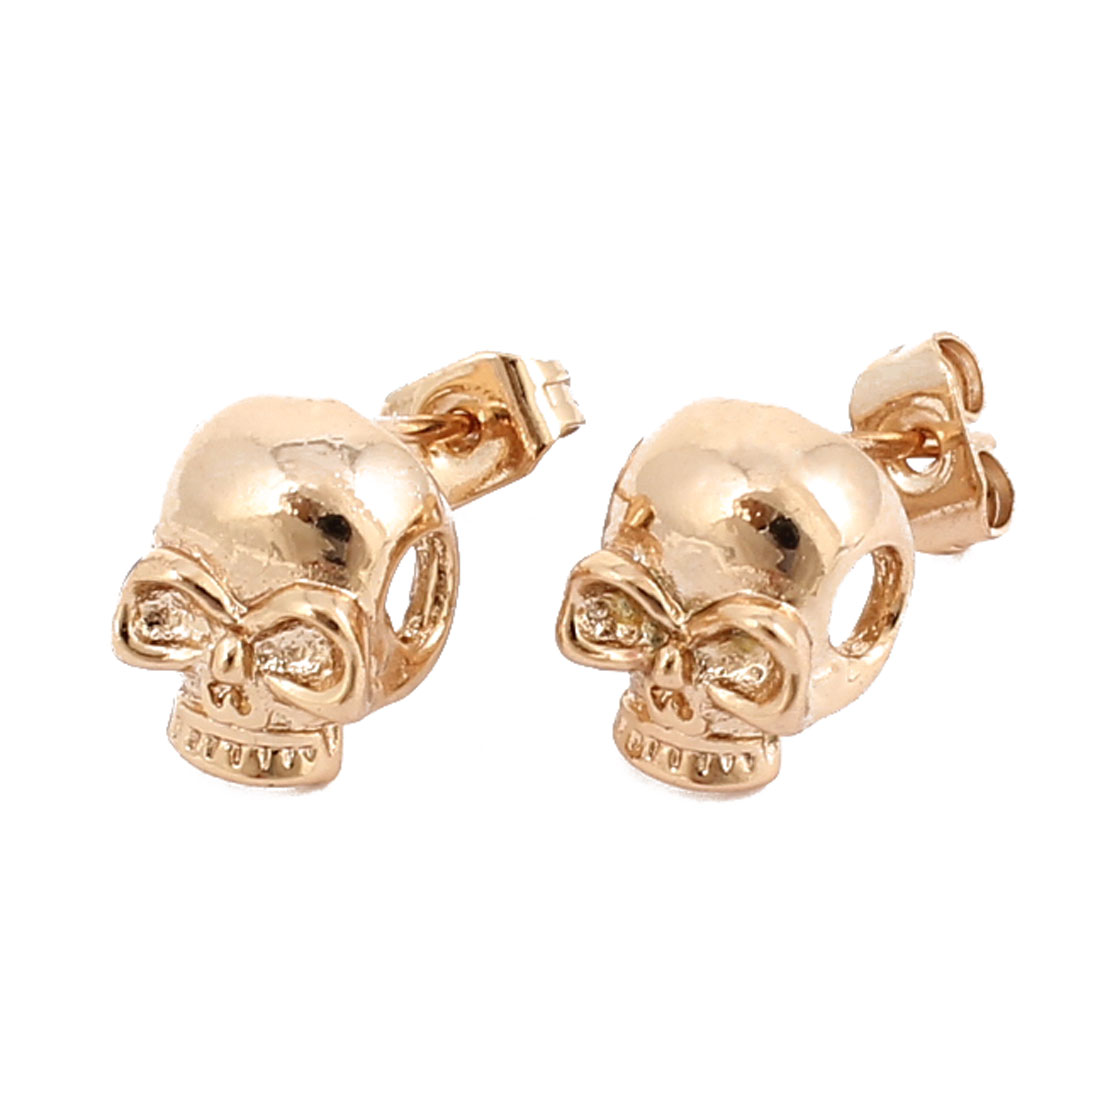 Ear Decor Pair Gold Tone Metal Skull Shaped Stud Pin Earbobs Earings